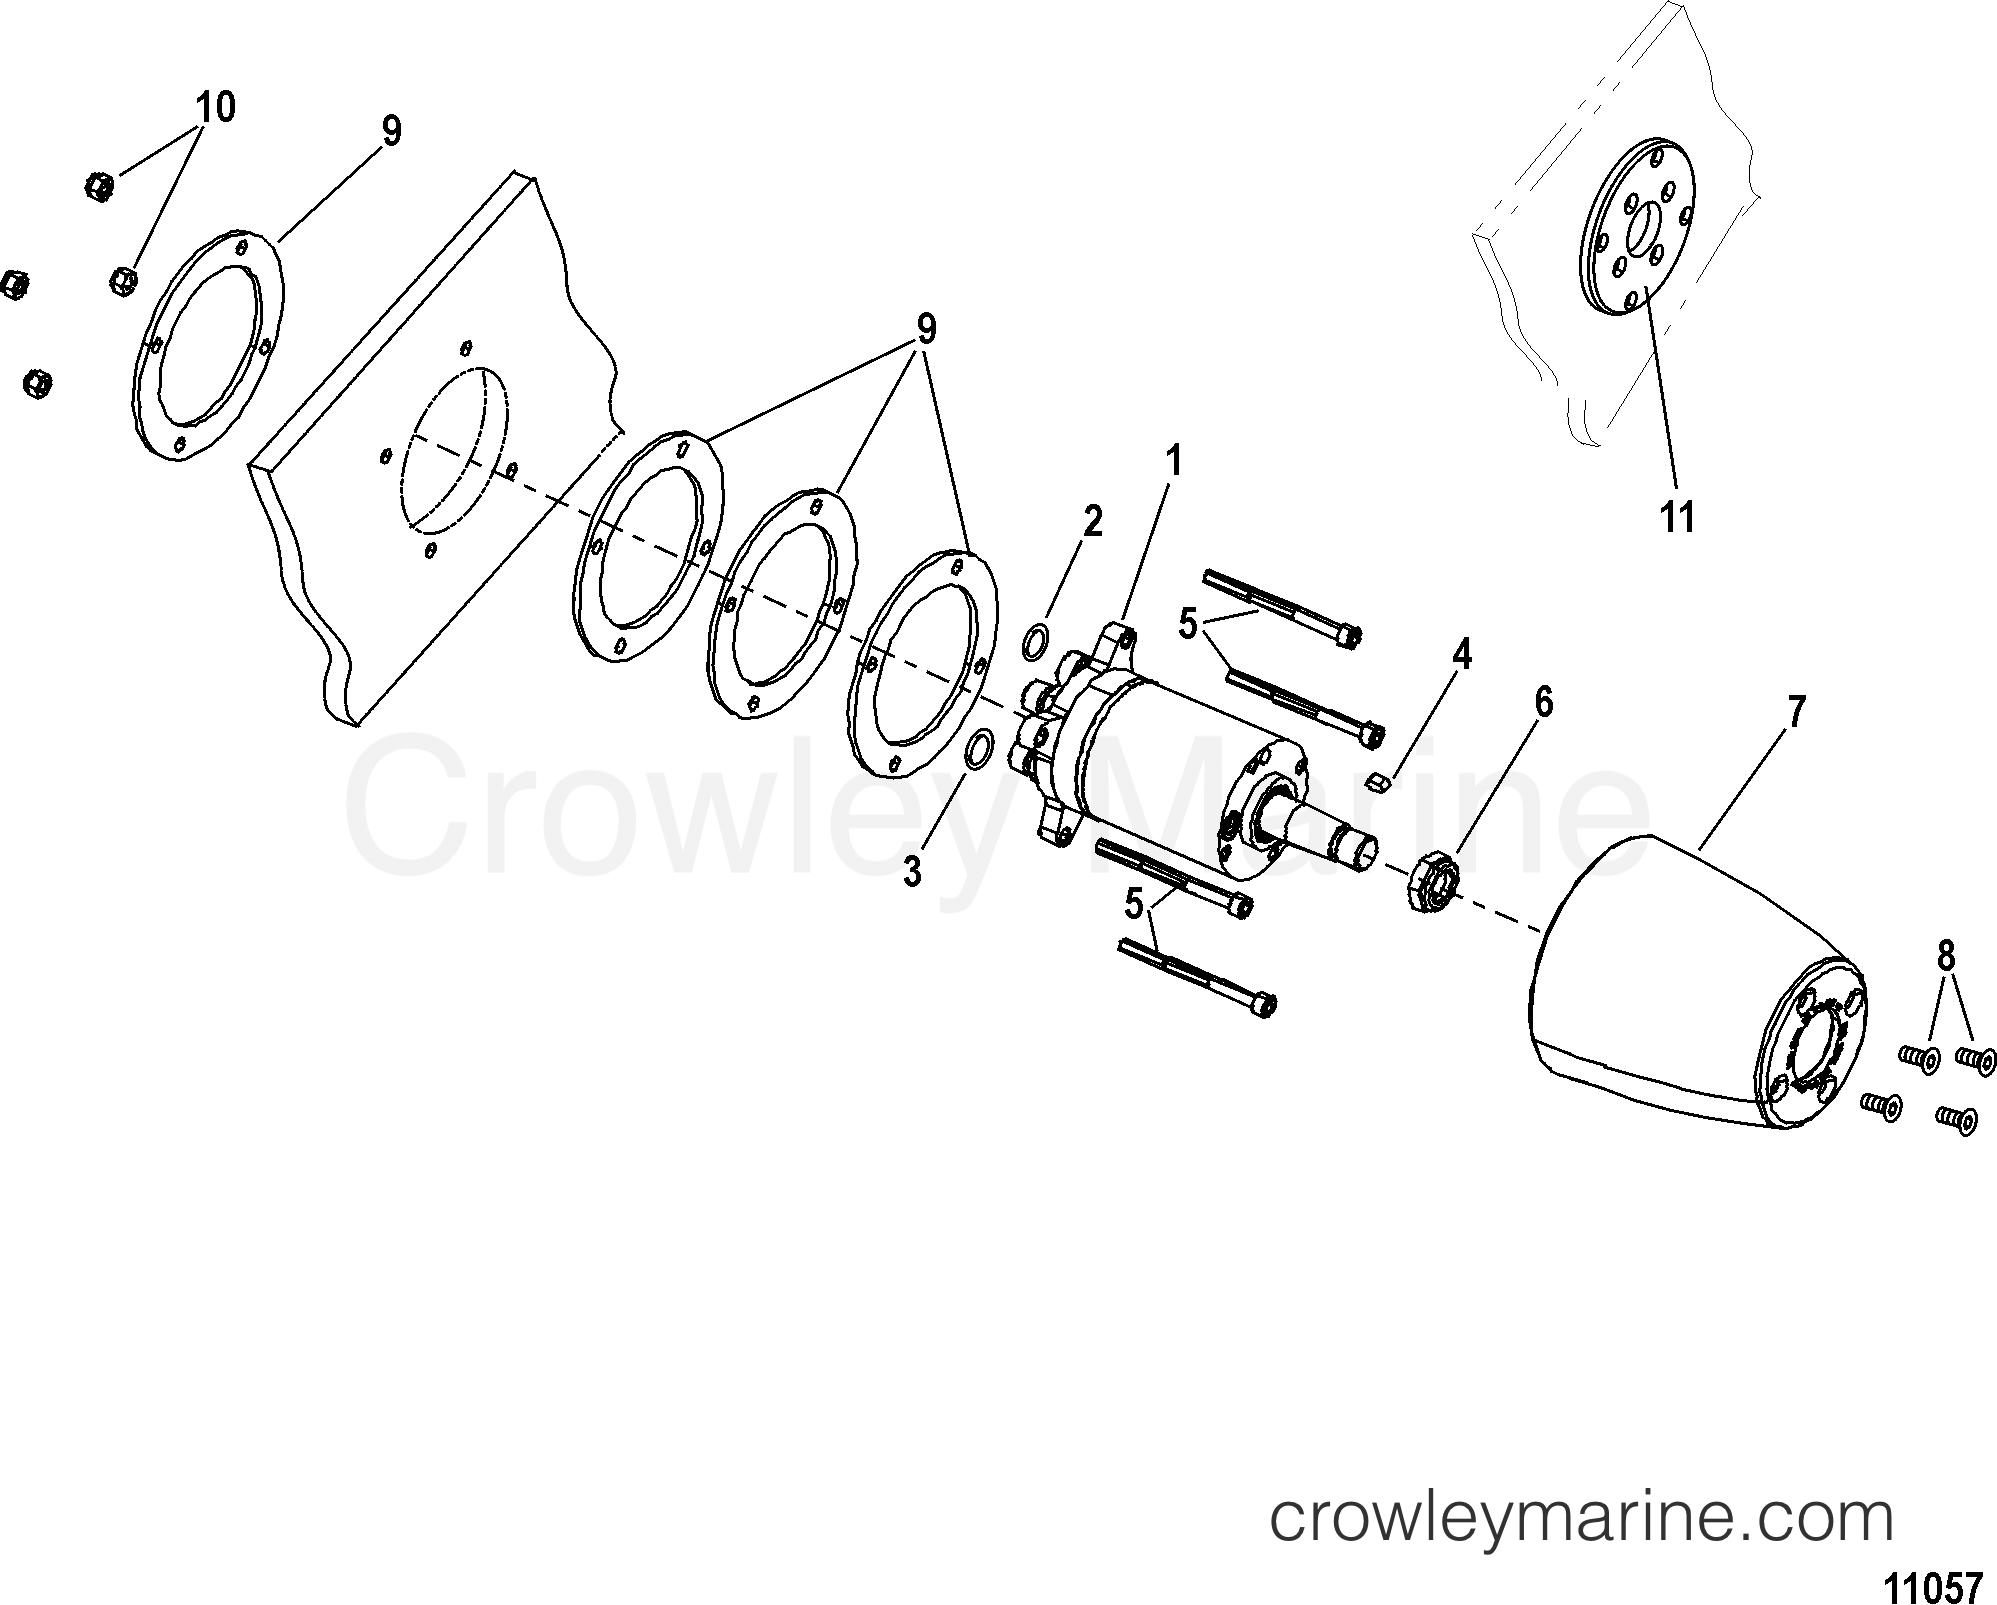 2014 Mercury Outboard 300 [CXL] - 1303V24KY - STEERING HELM KIT-STANDARD(892557A02, 892380A02, 892558A02) section